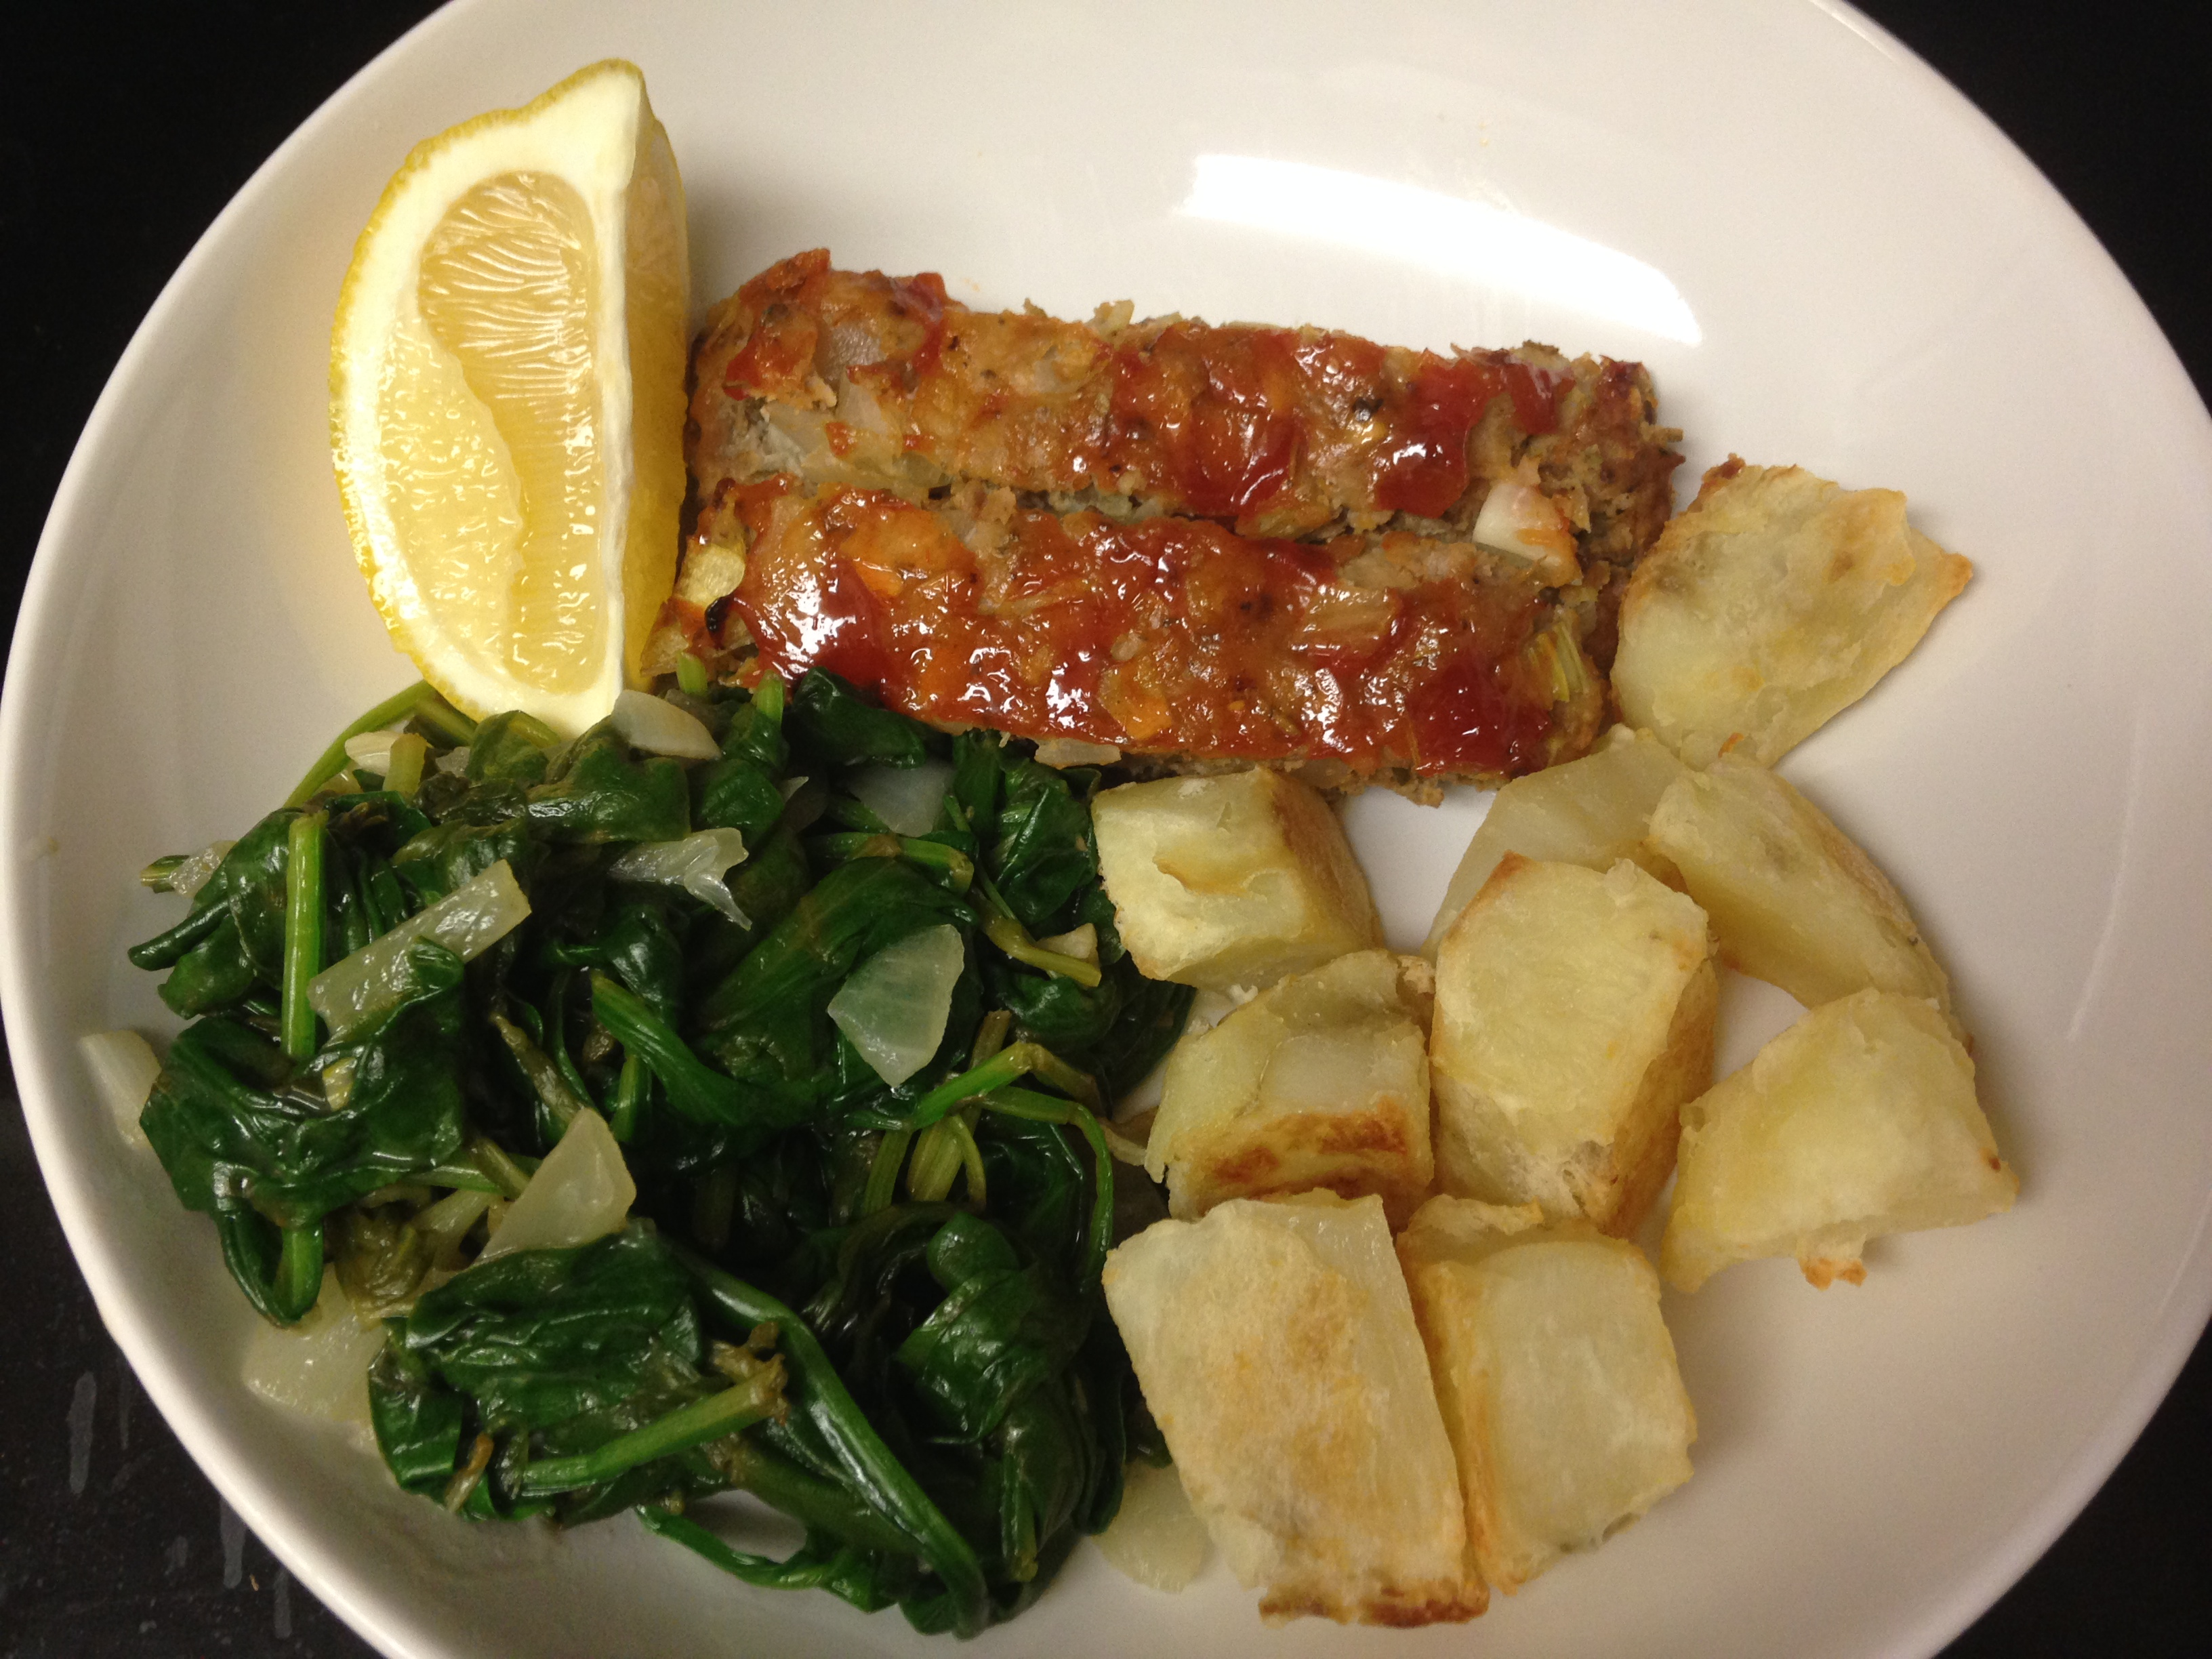 Blue apron turkey burger - Blue Apron Turkey Meatloaf With Roasted Potatoes And Sauteed Spinach Finished Product